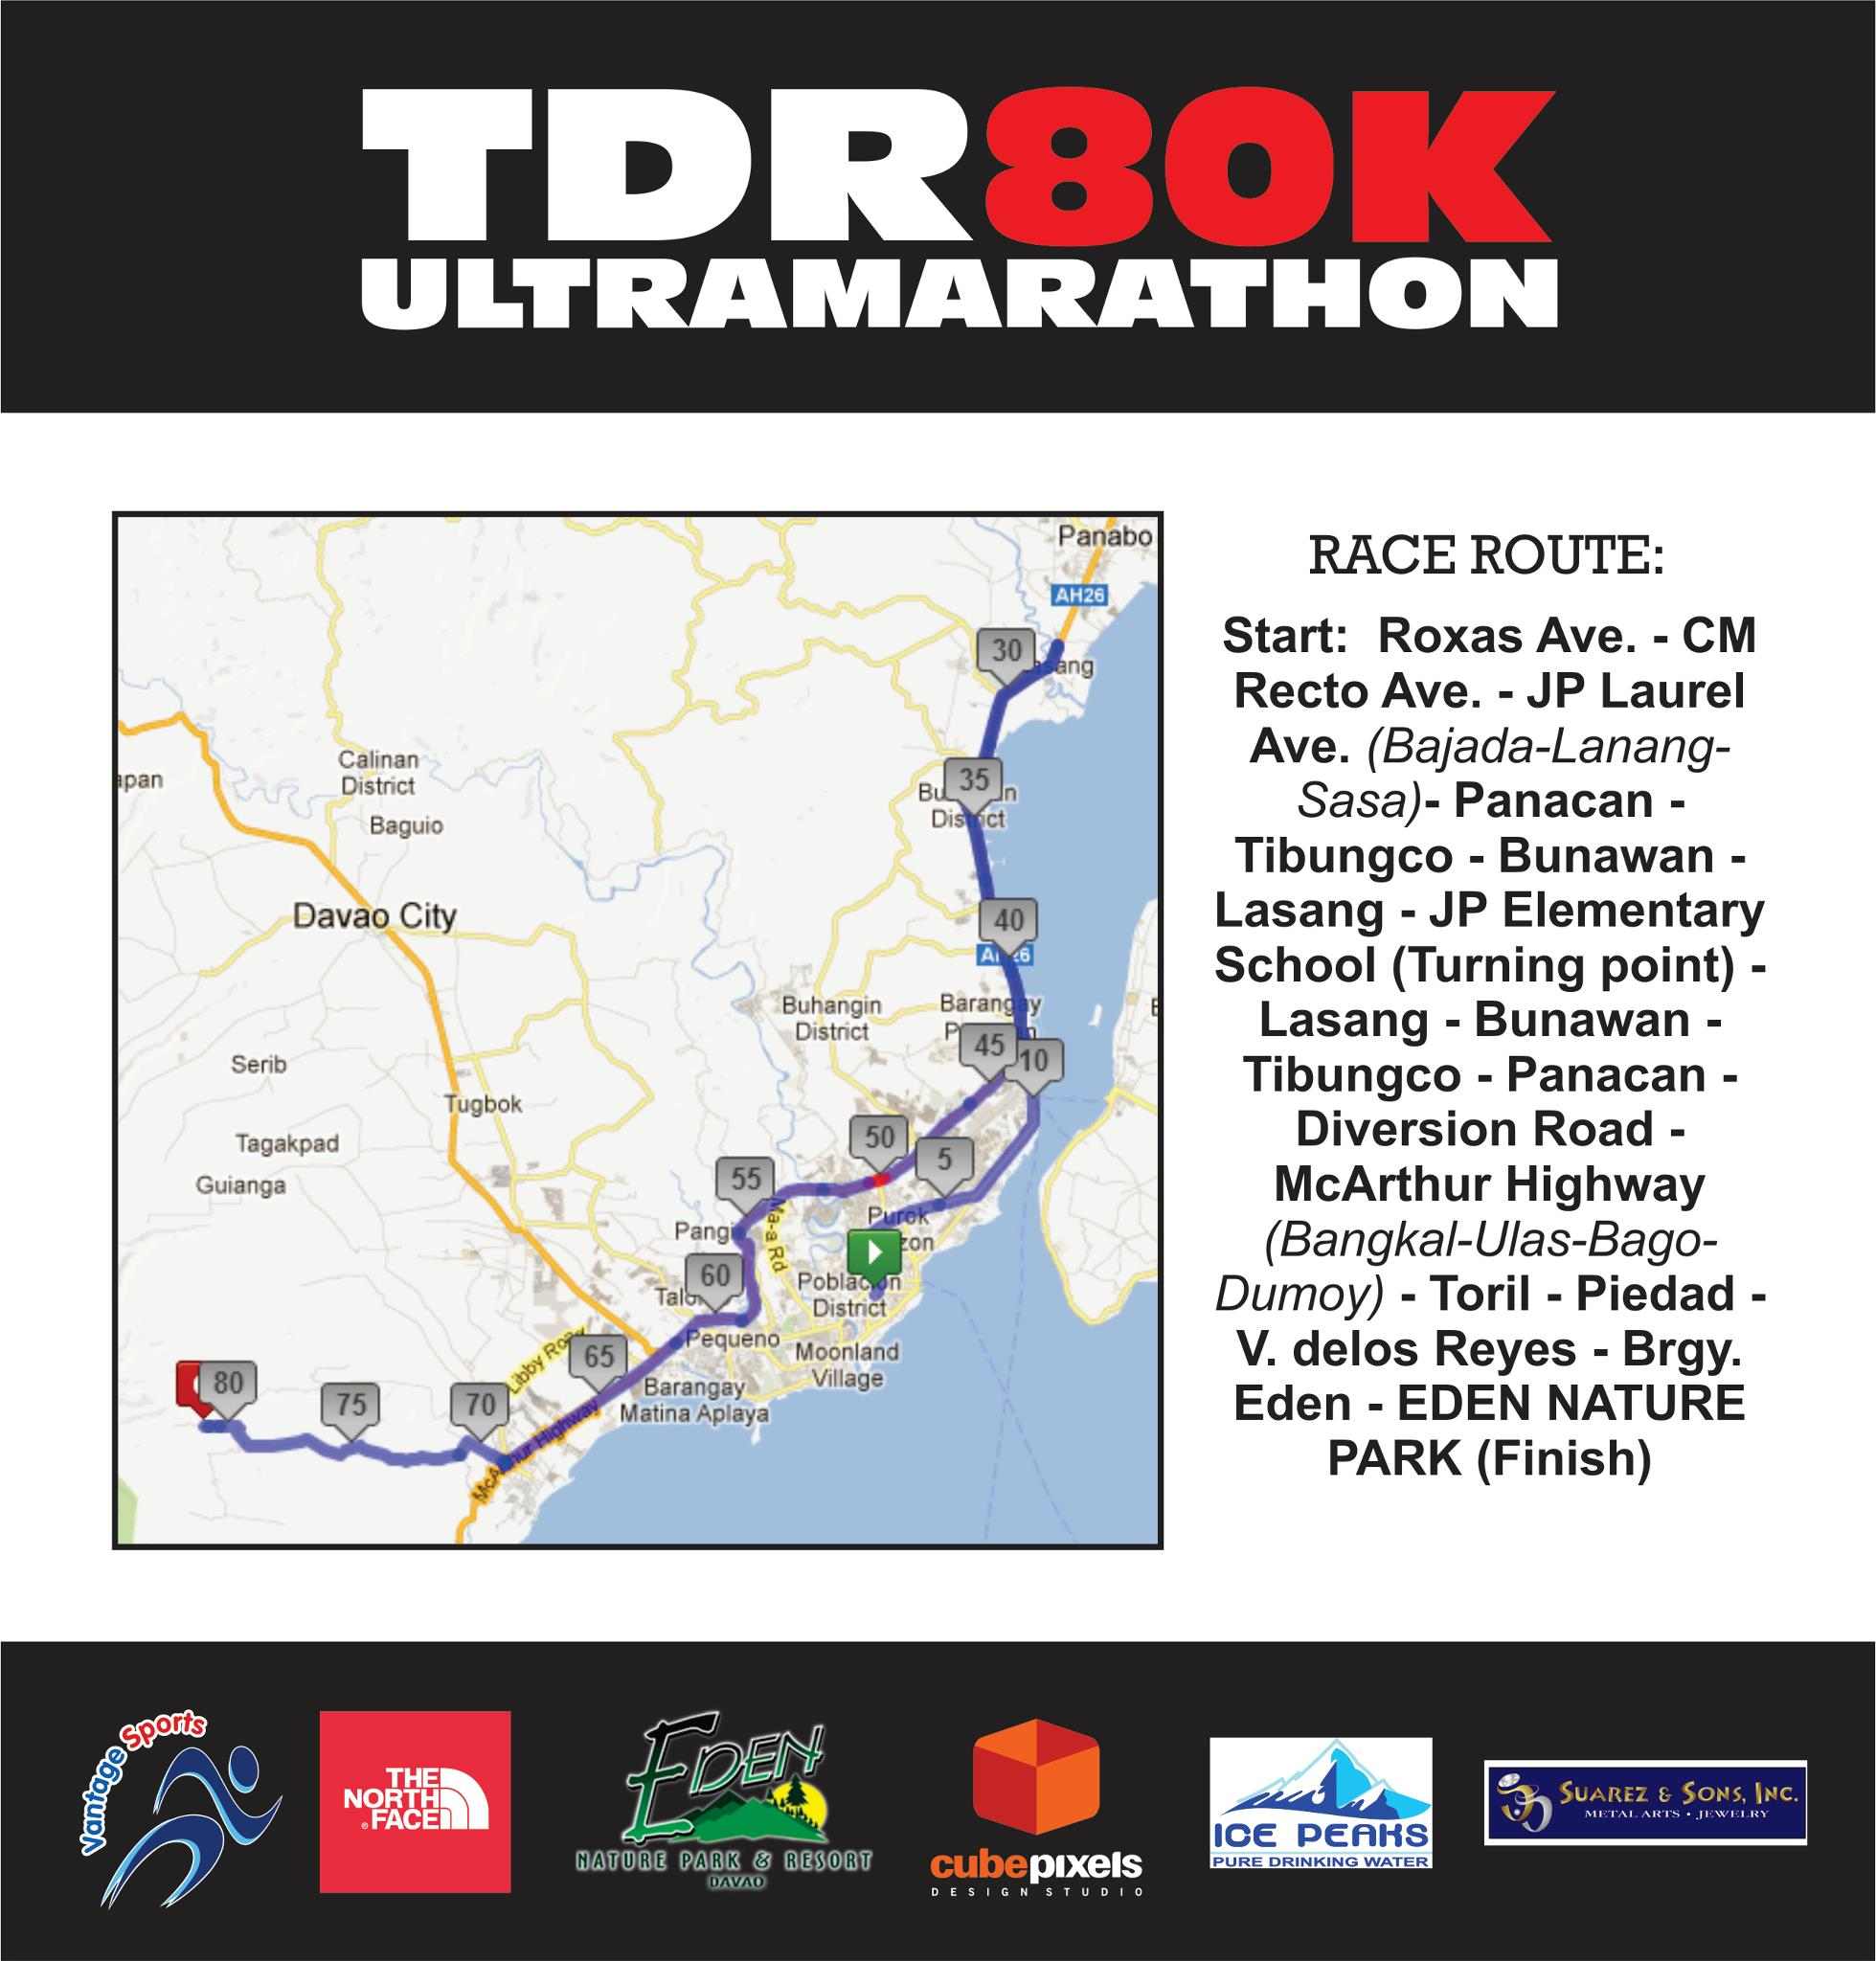 tdr-80k-ultra-marathon-route-map